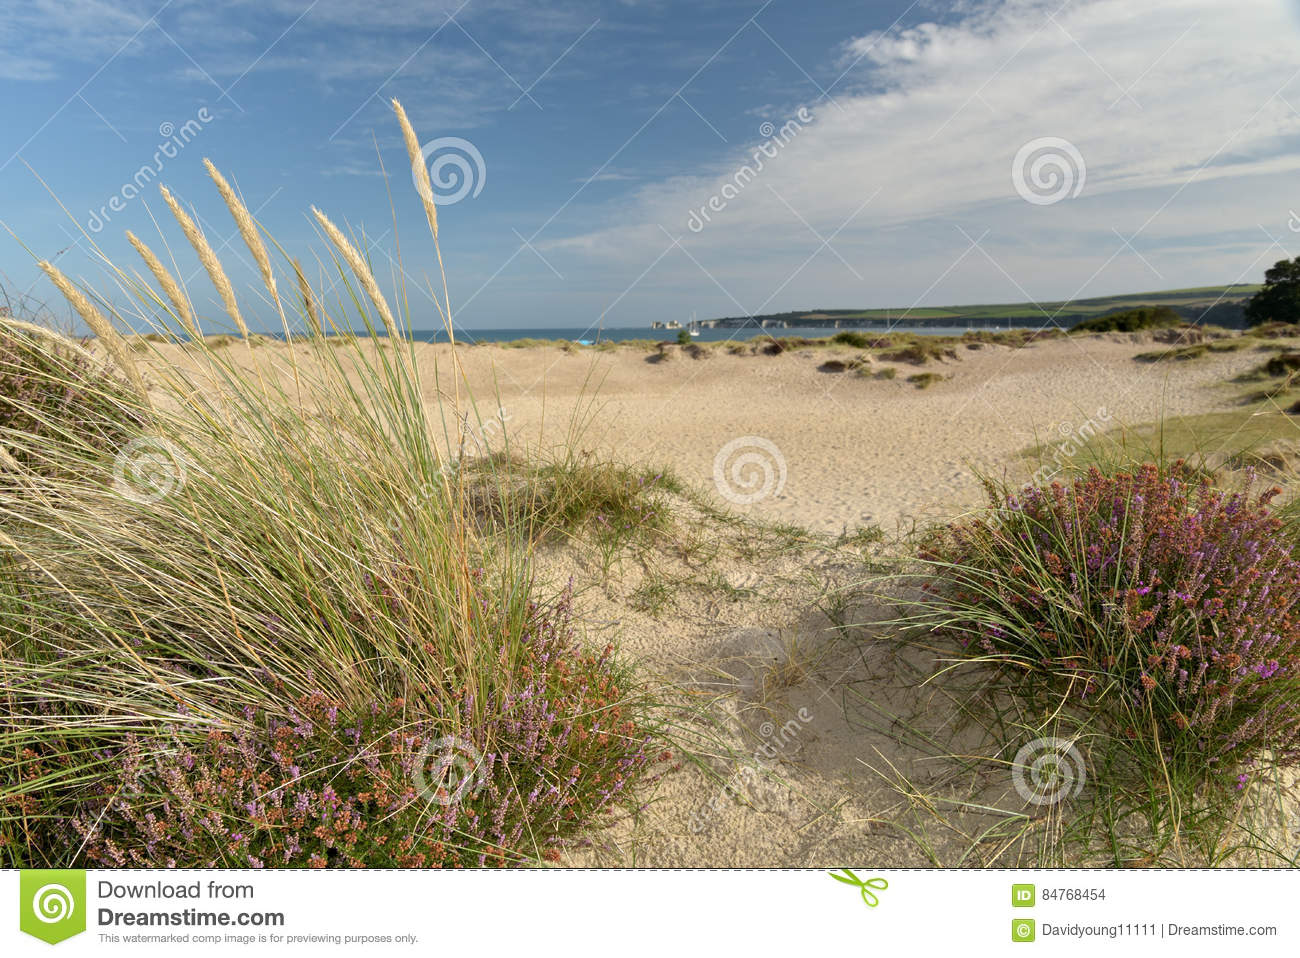 Heather Walk By Studland Bay Stock Photo - Image of ramble, shrub